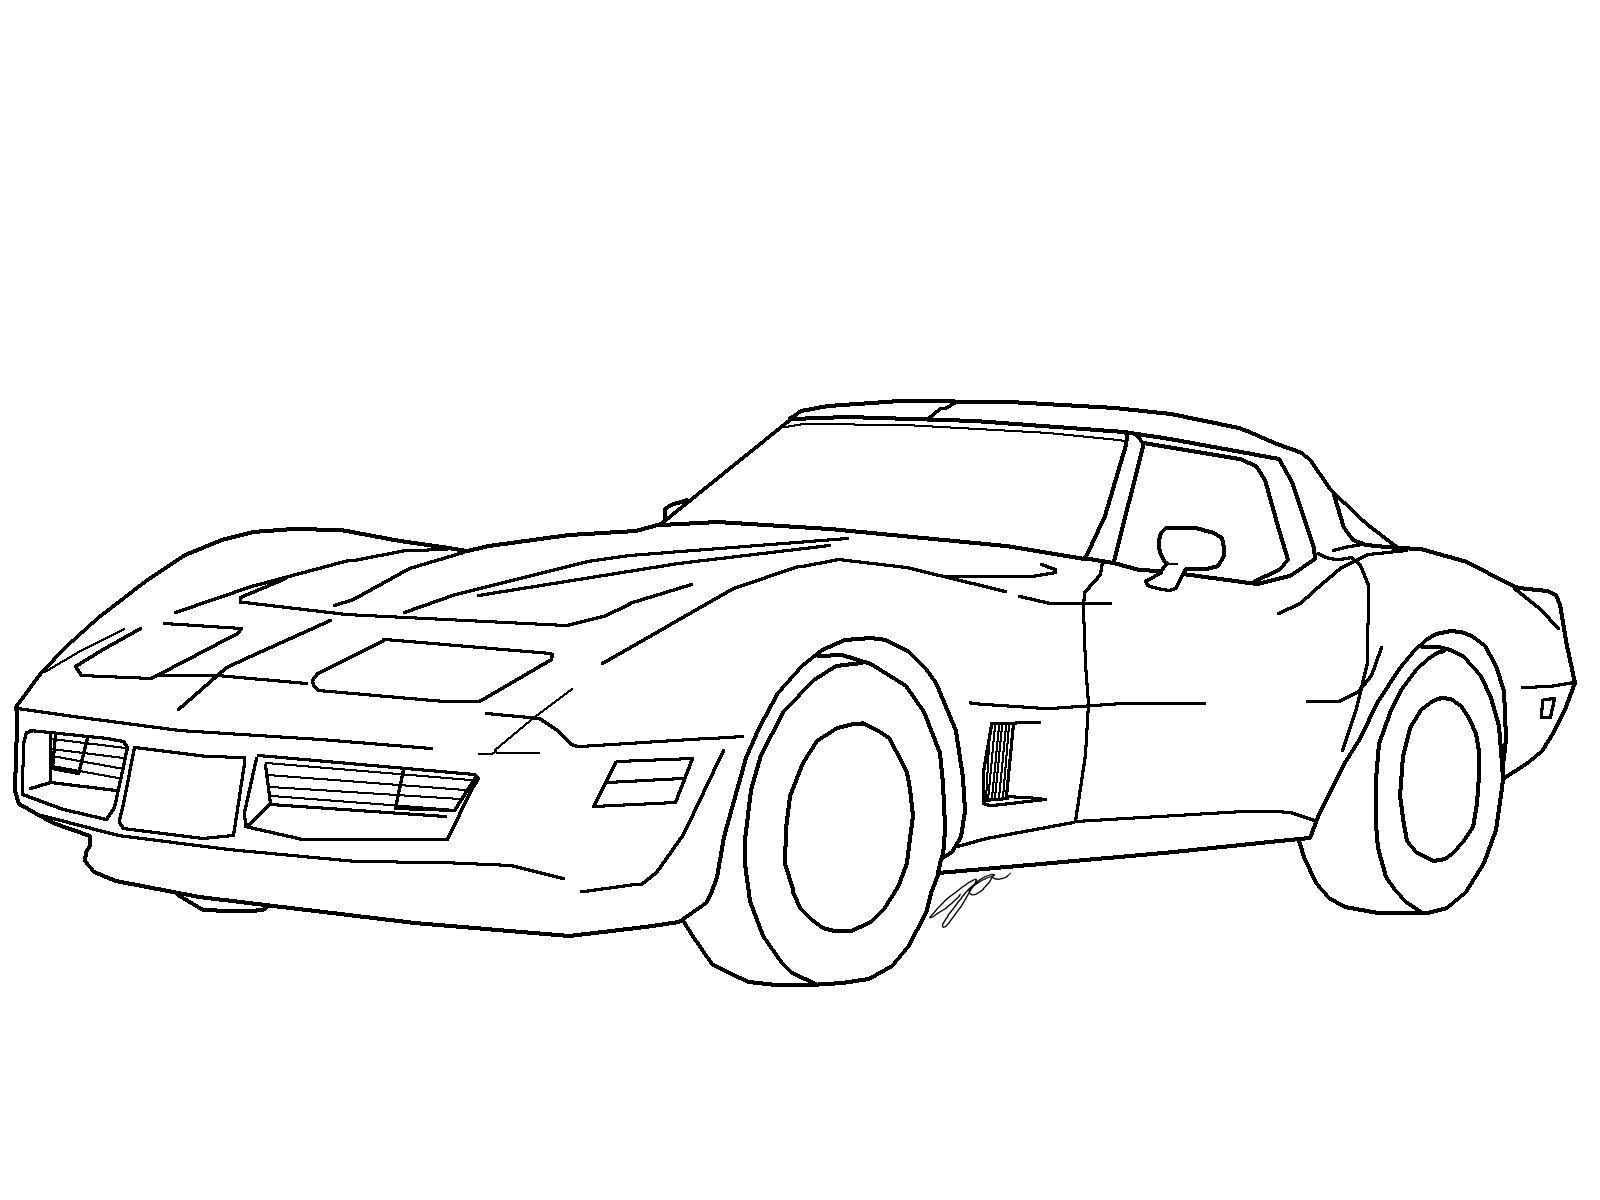 Chevrolet Corvette Drawing At Getdrawings